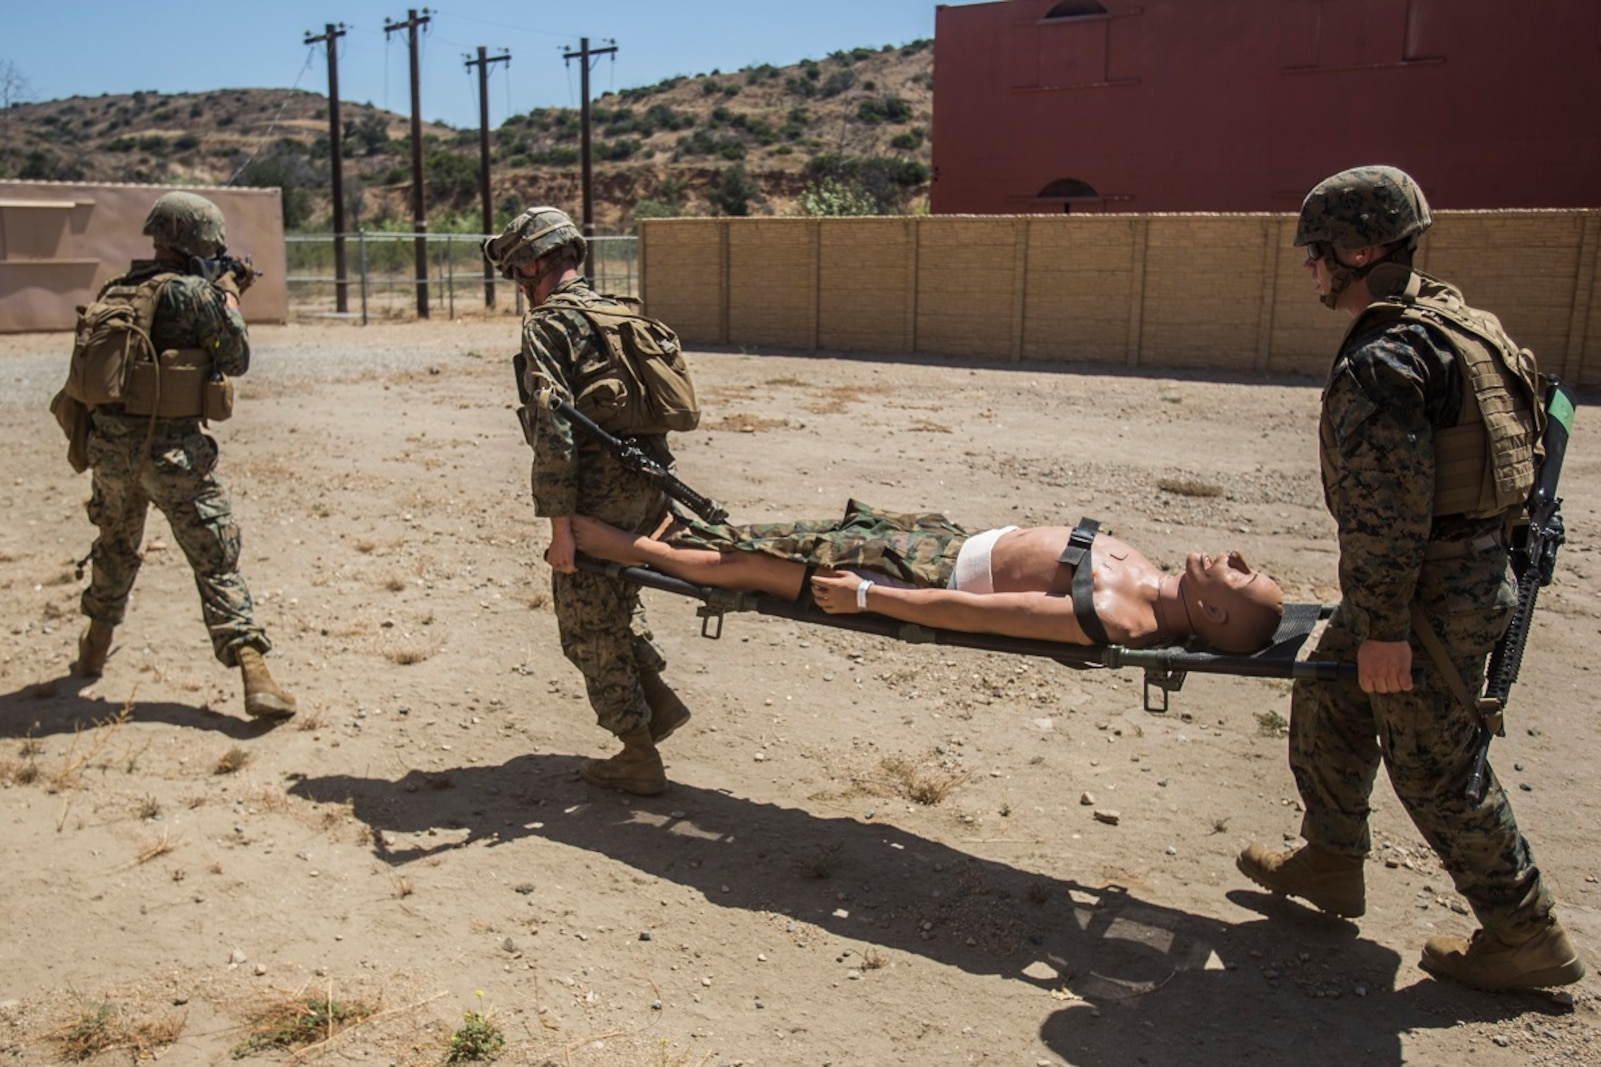 A U.S. Marine with Combat Logistics Battalion 13 provides security while a simulated casualty is transported to safety during a field medical training exercise on Marine Corps Base Camp Pendleton, Calif., Jul. 18, 2017. The Marines are placed in scenarios meant to test them not only tactically through patrolling but also establishing and securing an expedient casualty collection point, assessment, treatment and triage of all casualties, and movement of patient under fire to a landing zone.